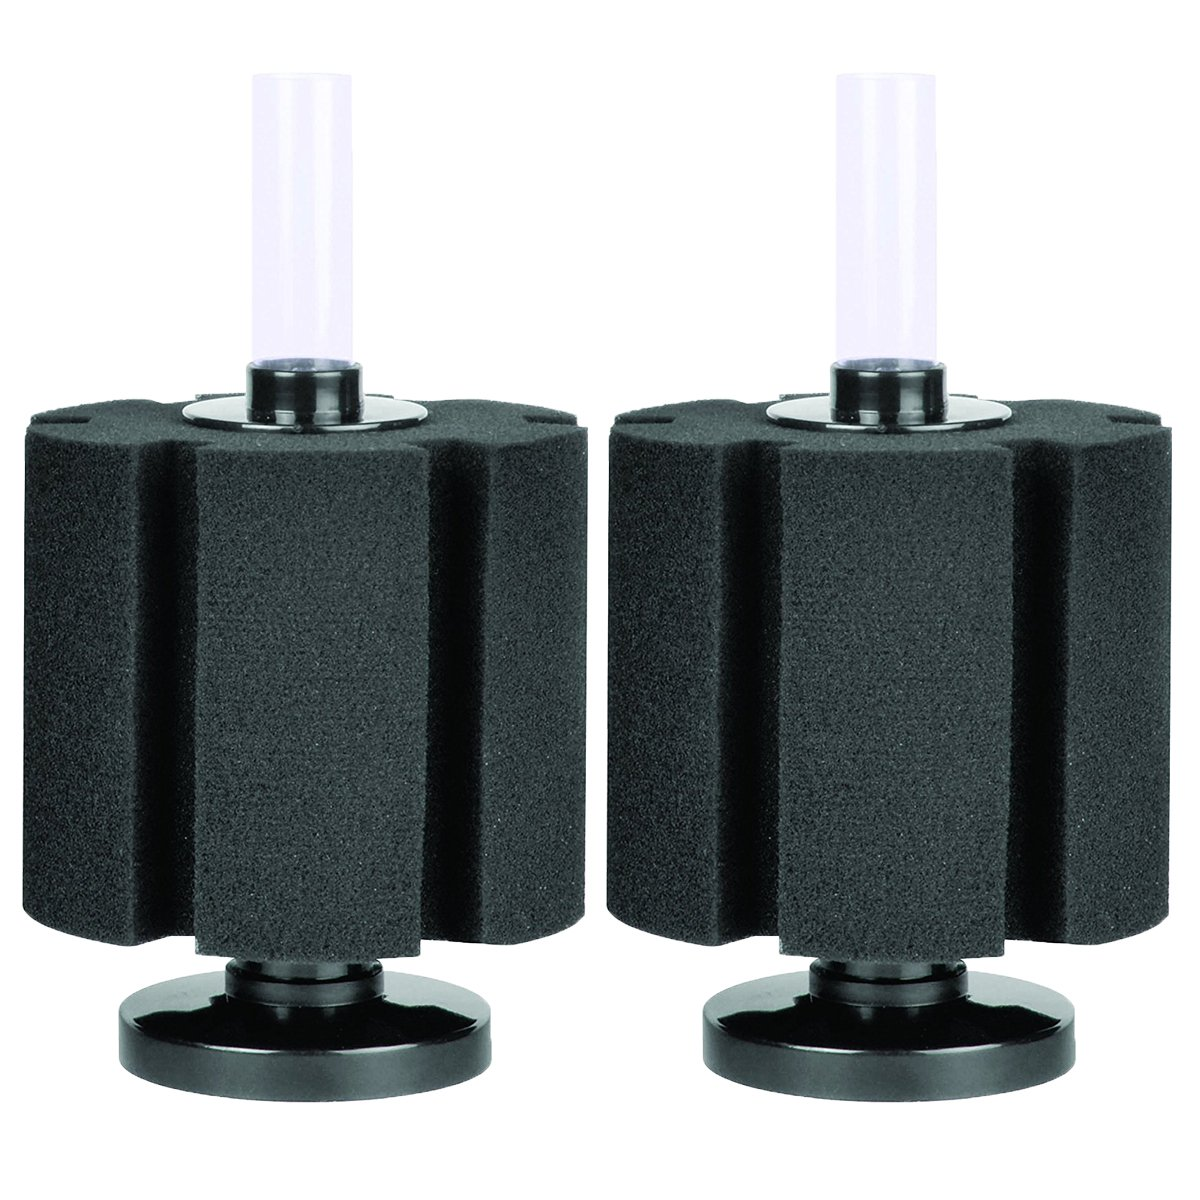 BACTO-SURGE HIGH DENSITY FOAM FILTER (2-Pack) by Pay It Forward Pet Supply